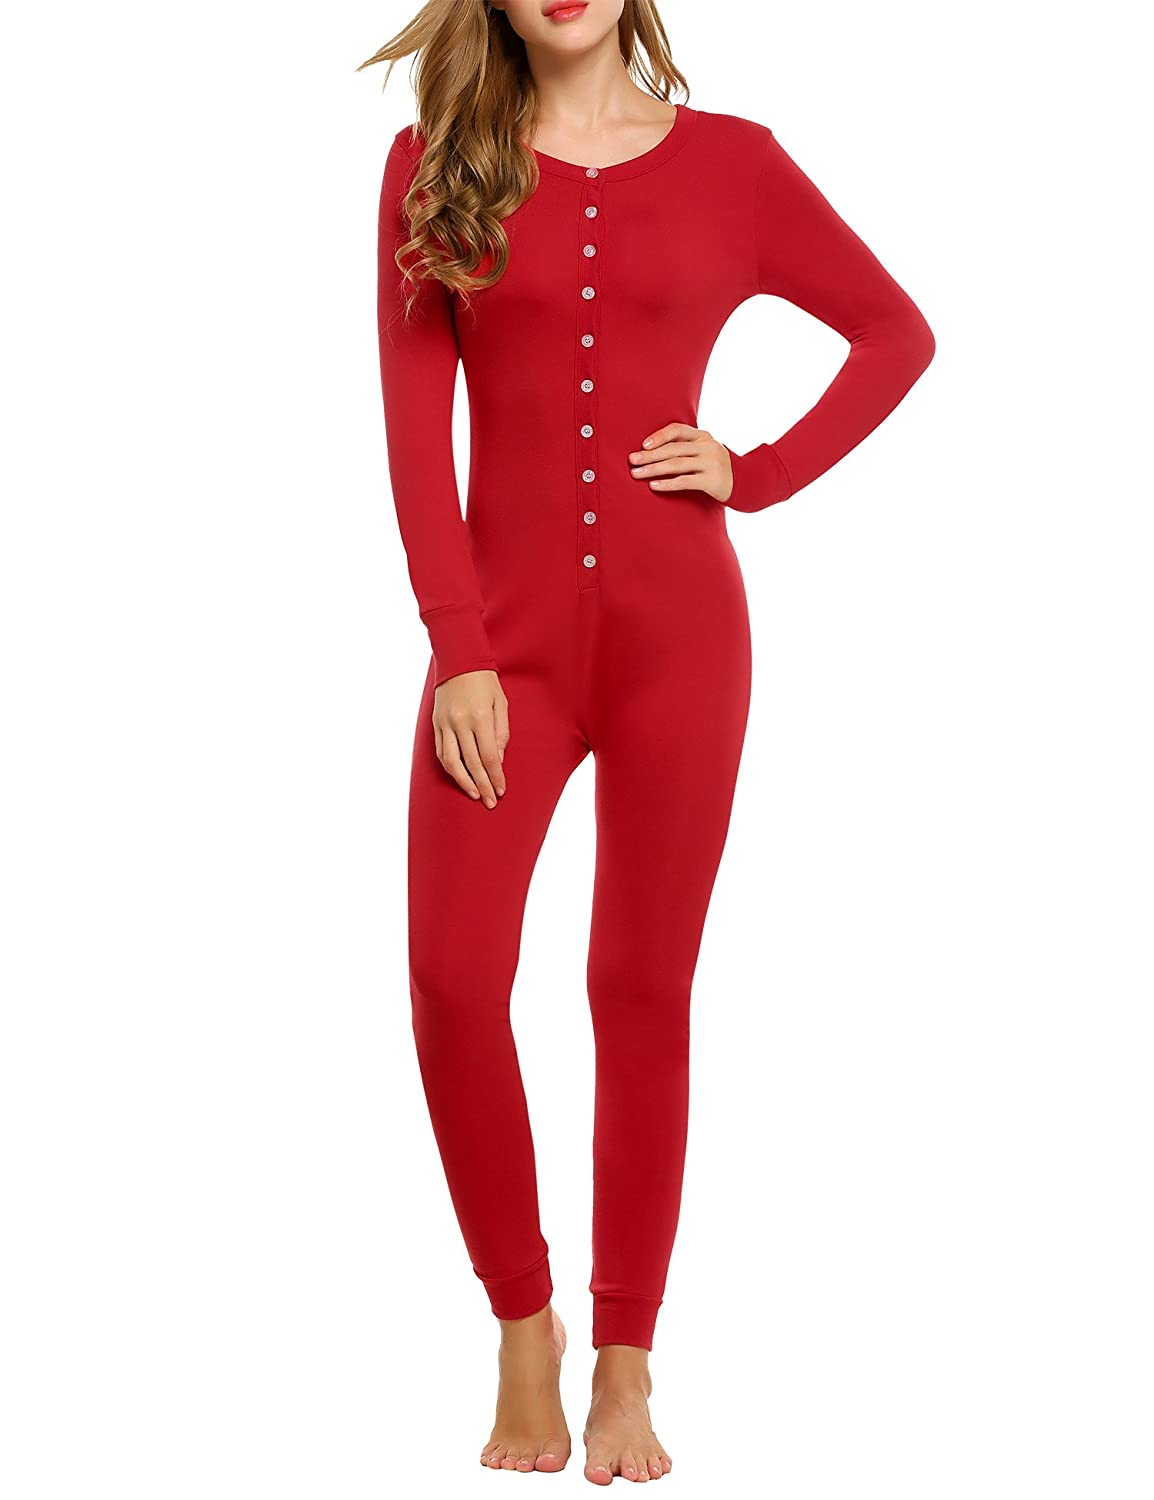 Hotouch Womens Long Sleeve Onesie Union Suit Thermal Underwear Set Sleepwear Pajama Jumpsuit Union S-XXL AMK005180